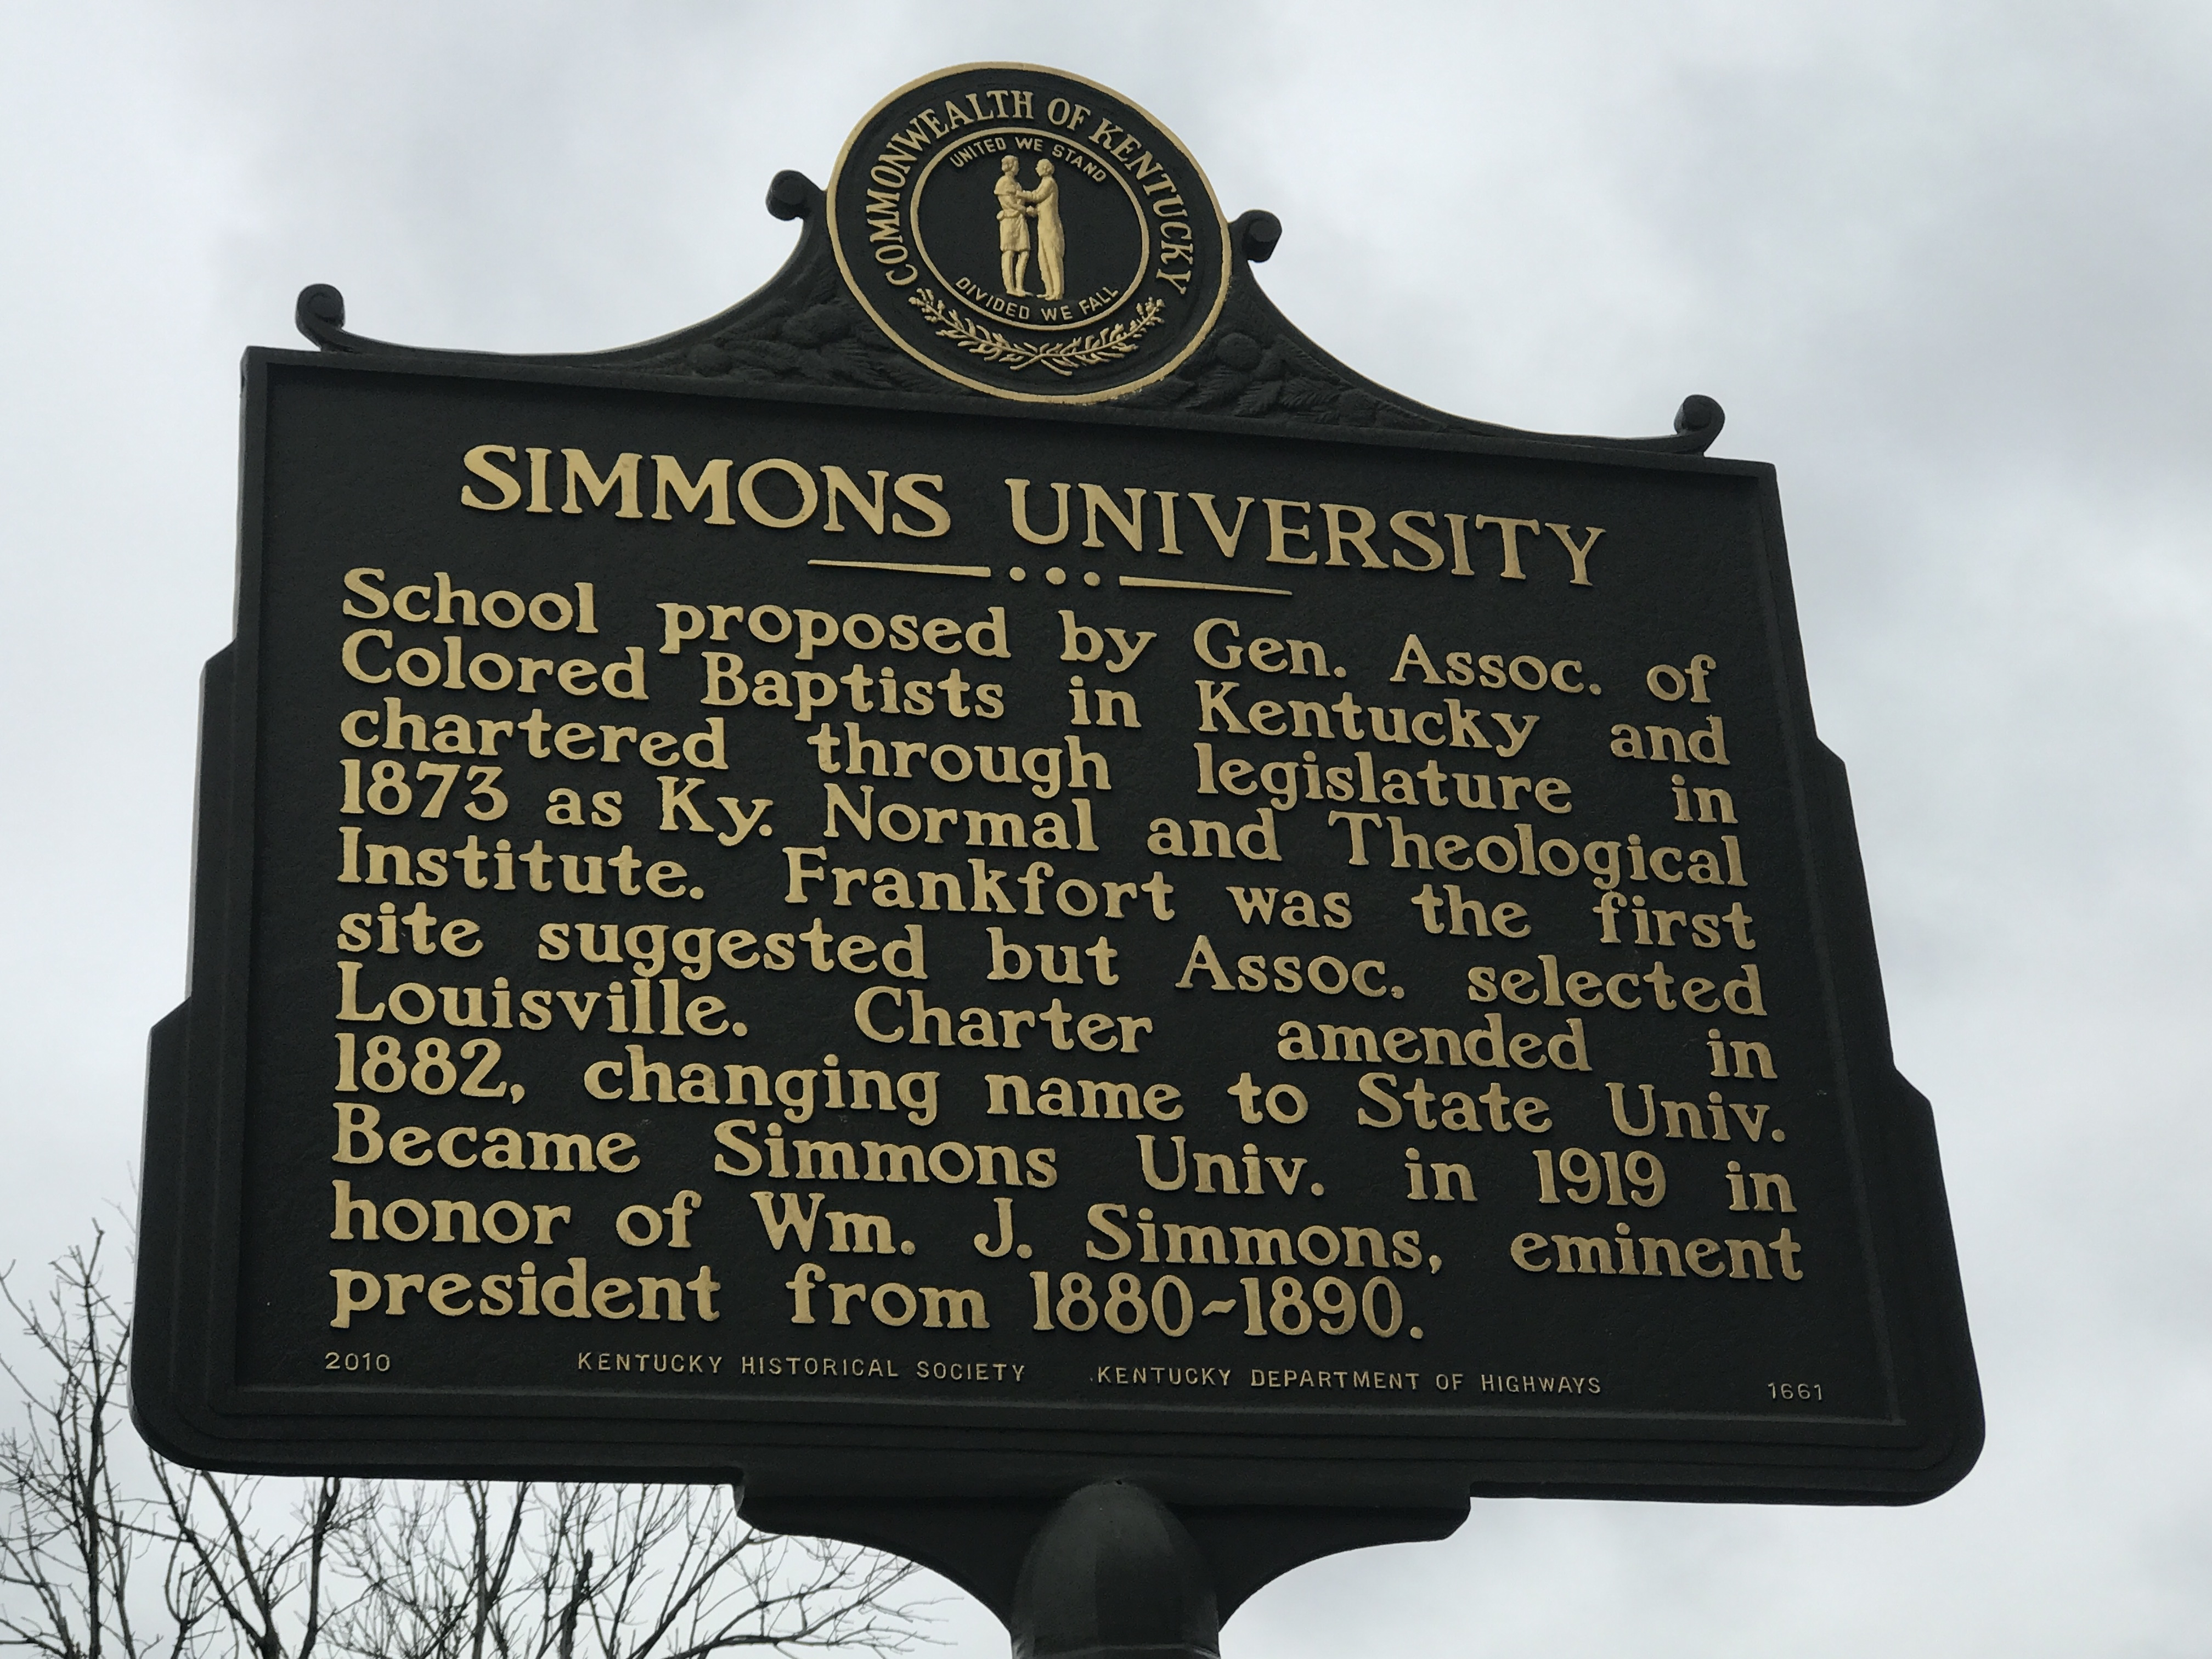 Simmons University Marker (Side A)